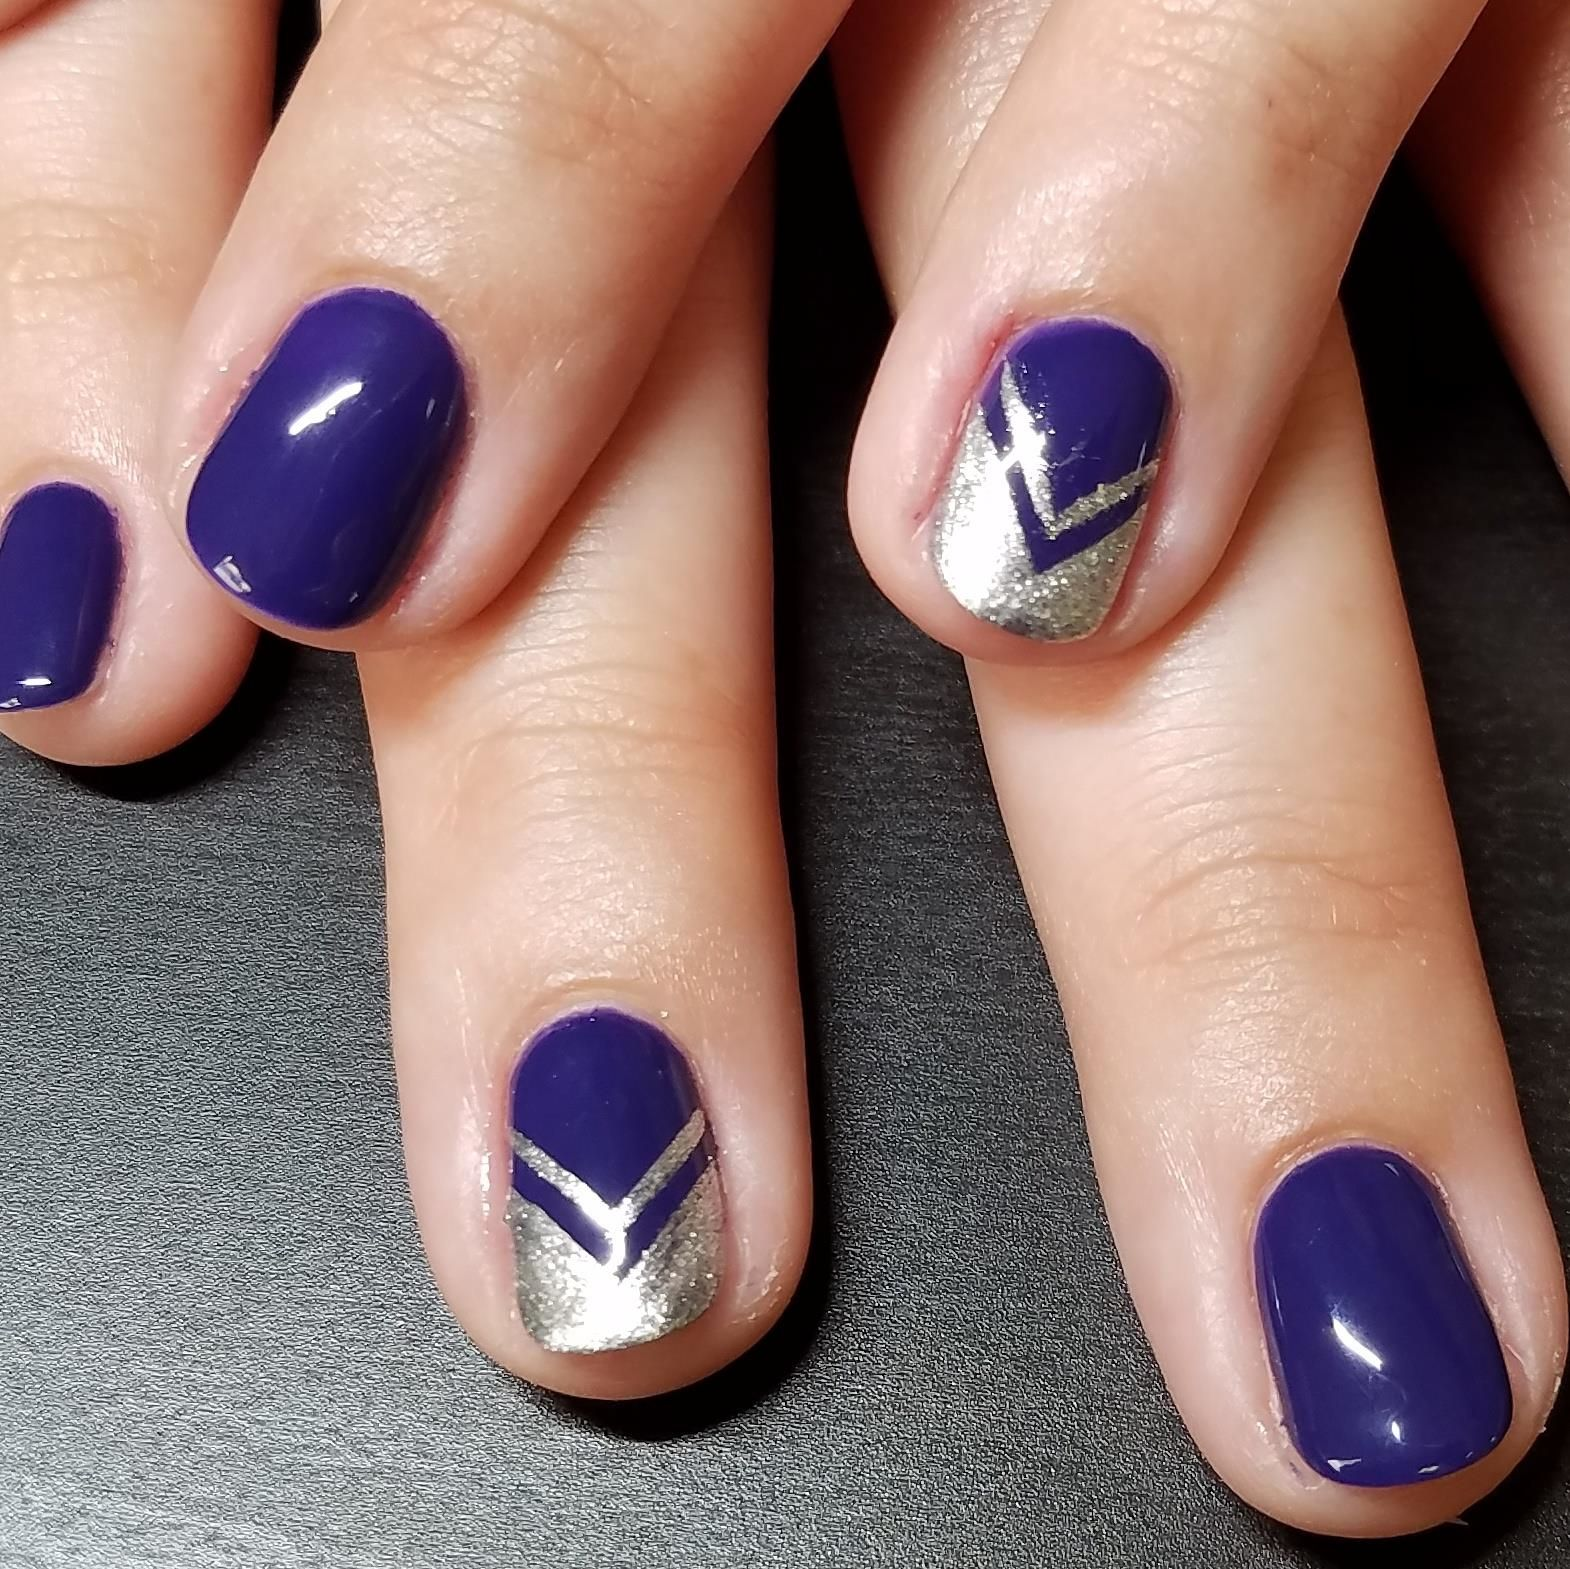 Gel Manicure $35 Specializing in natural nail services with gel ...